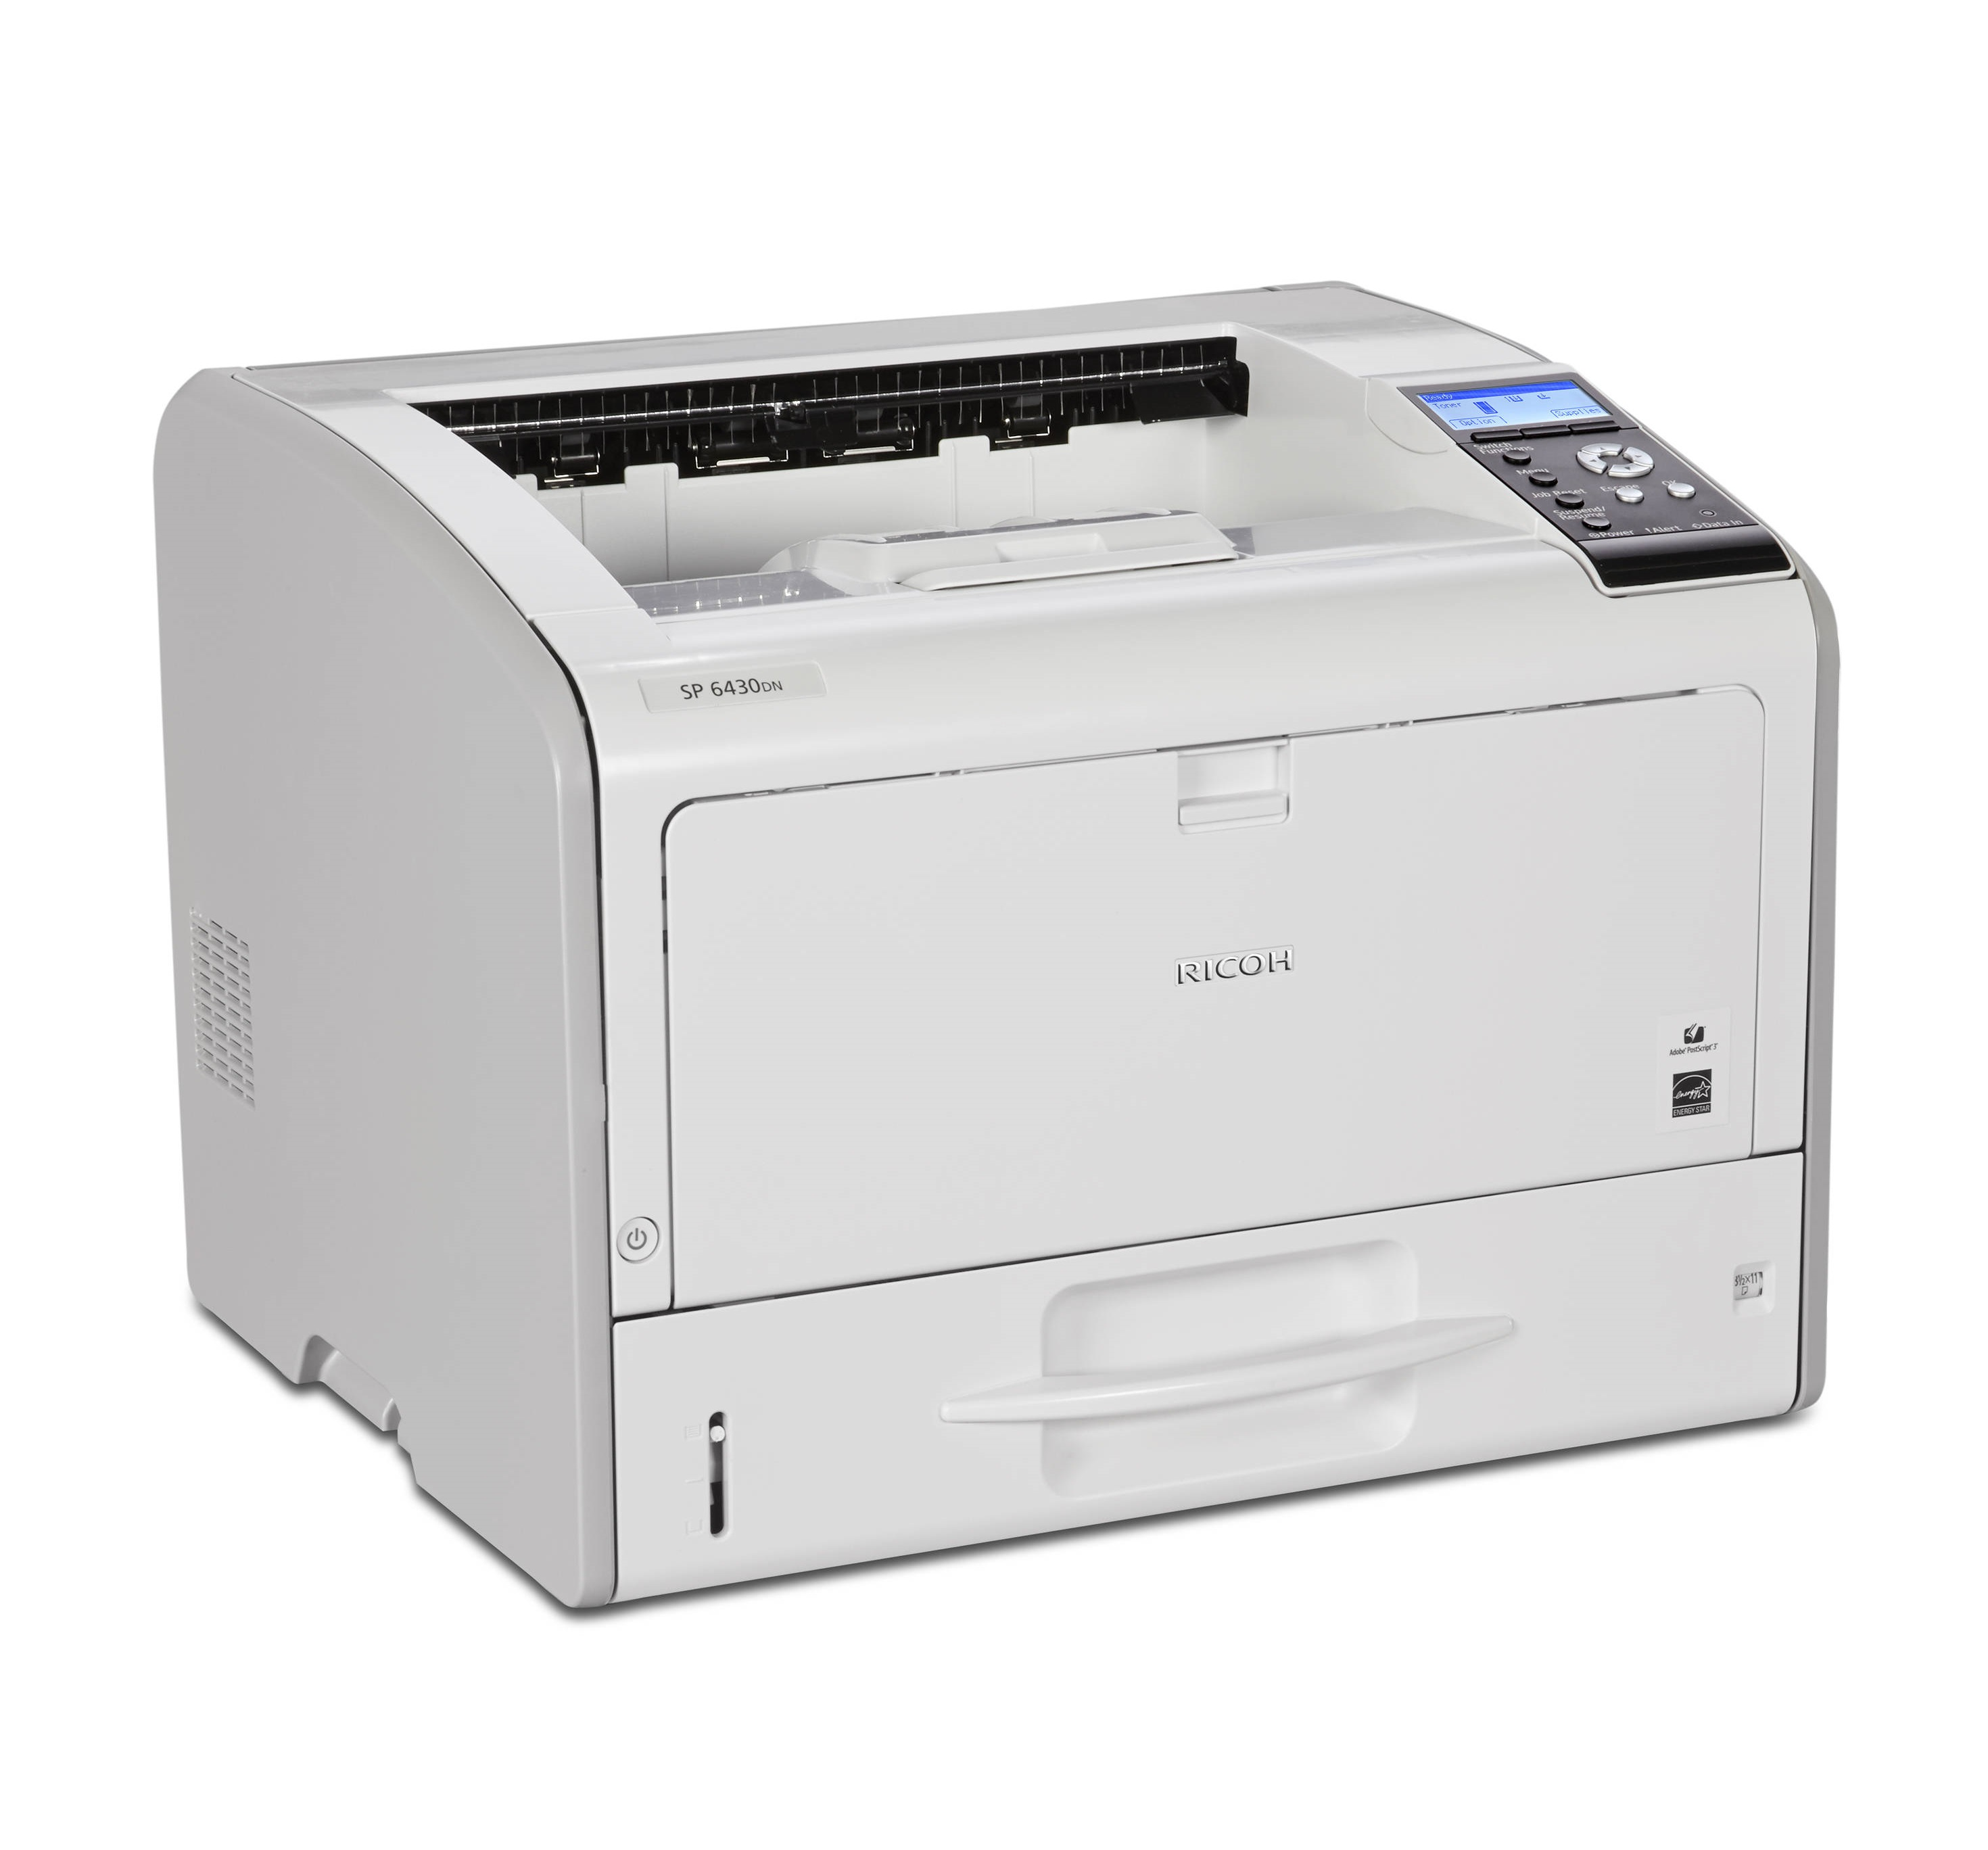 https://tryamm.ro/ro/products/office-printers-fax-scanners/imprimante-a4/imprimante-alb-negru/